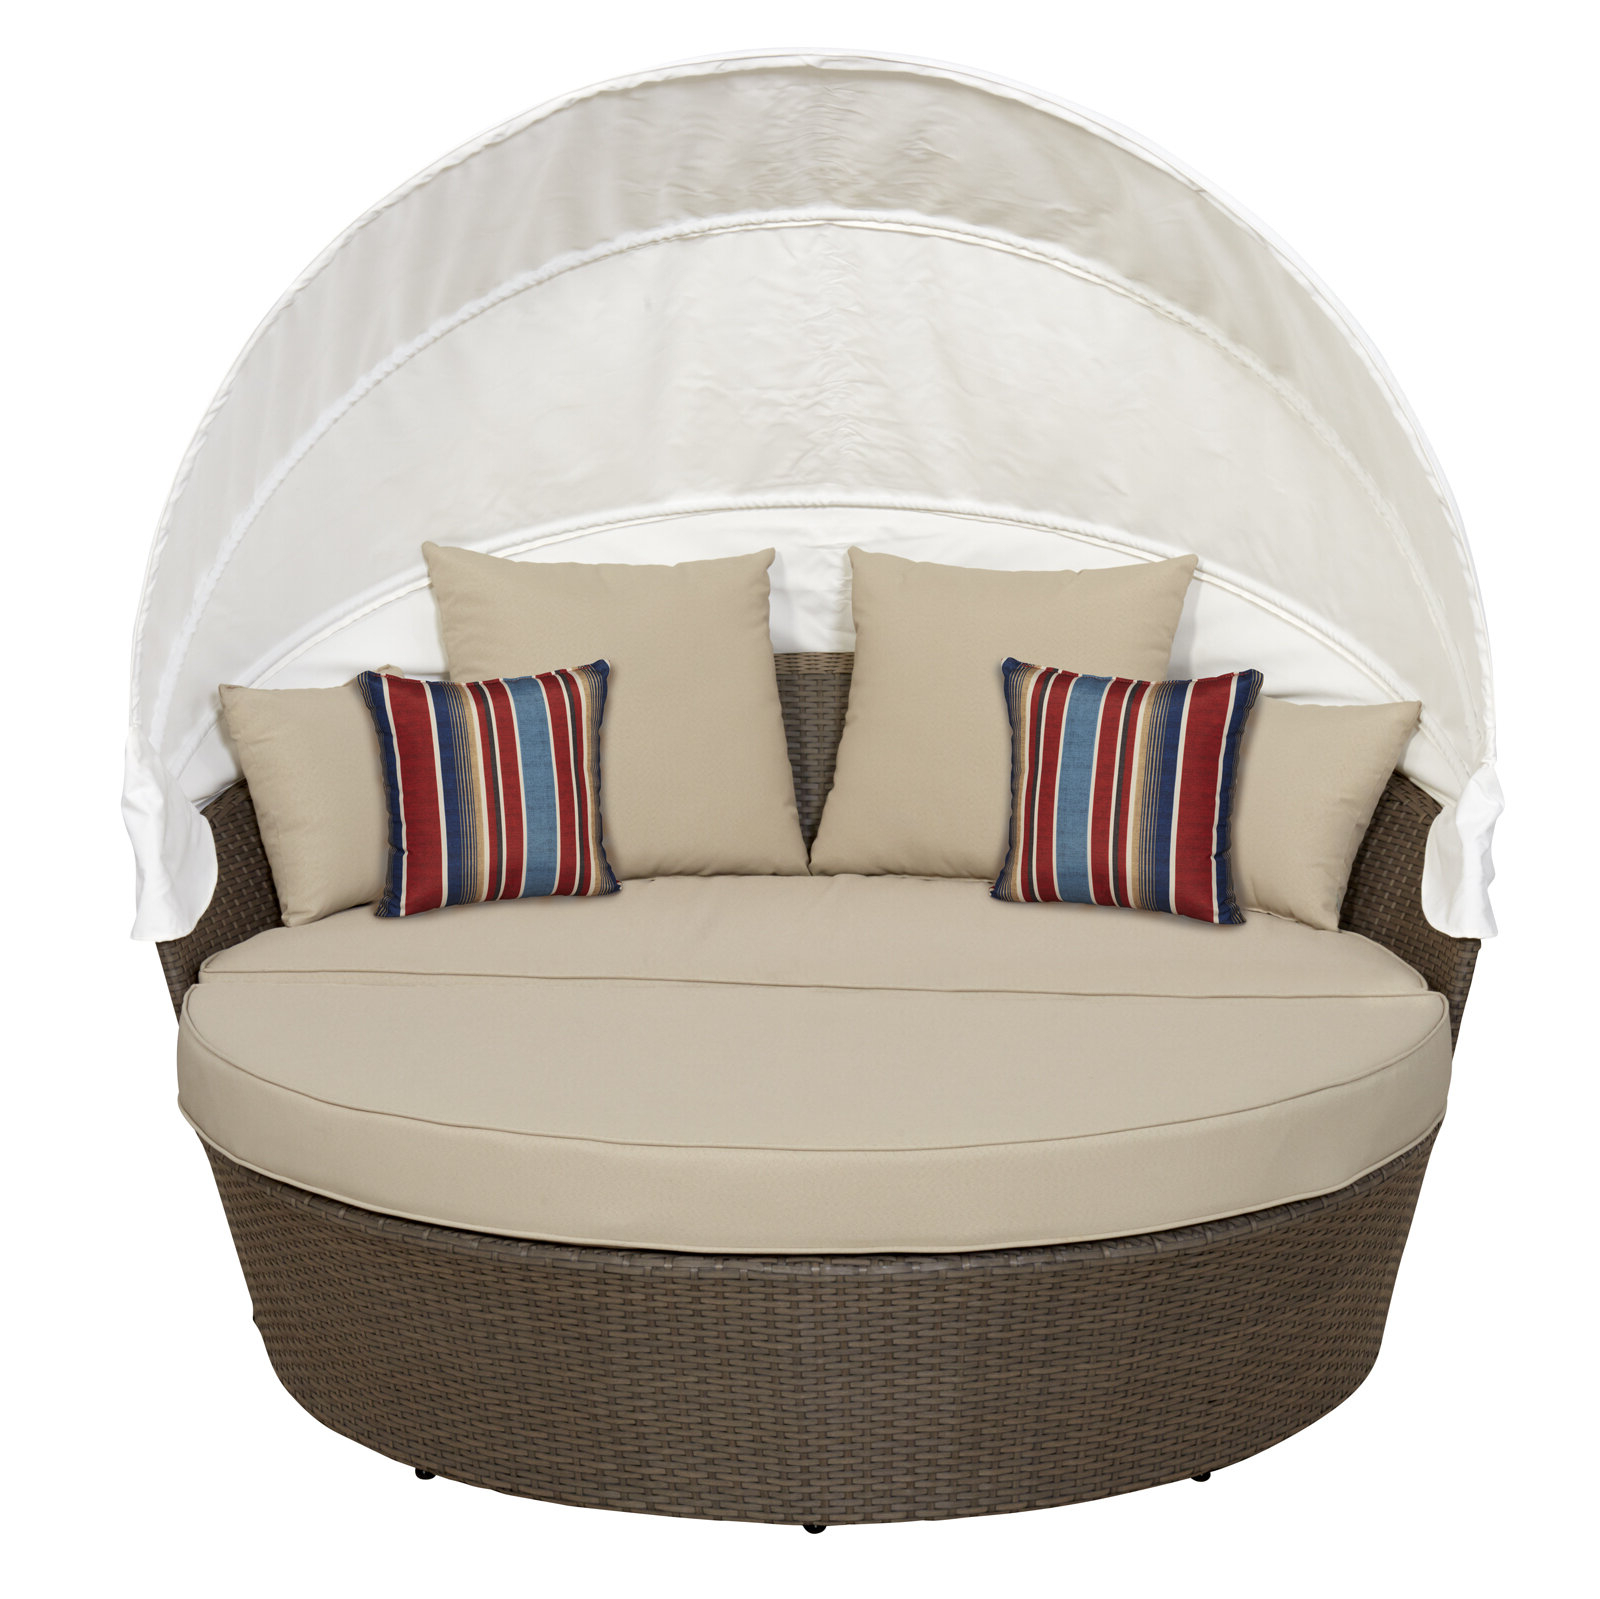 Most Up To Date Beal Patio Daybeds With Cushions With Regard To Sasser Patio Daybed With Cushions (View 17 of 25)